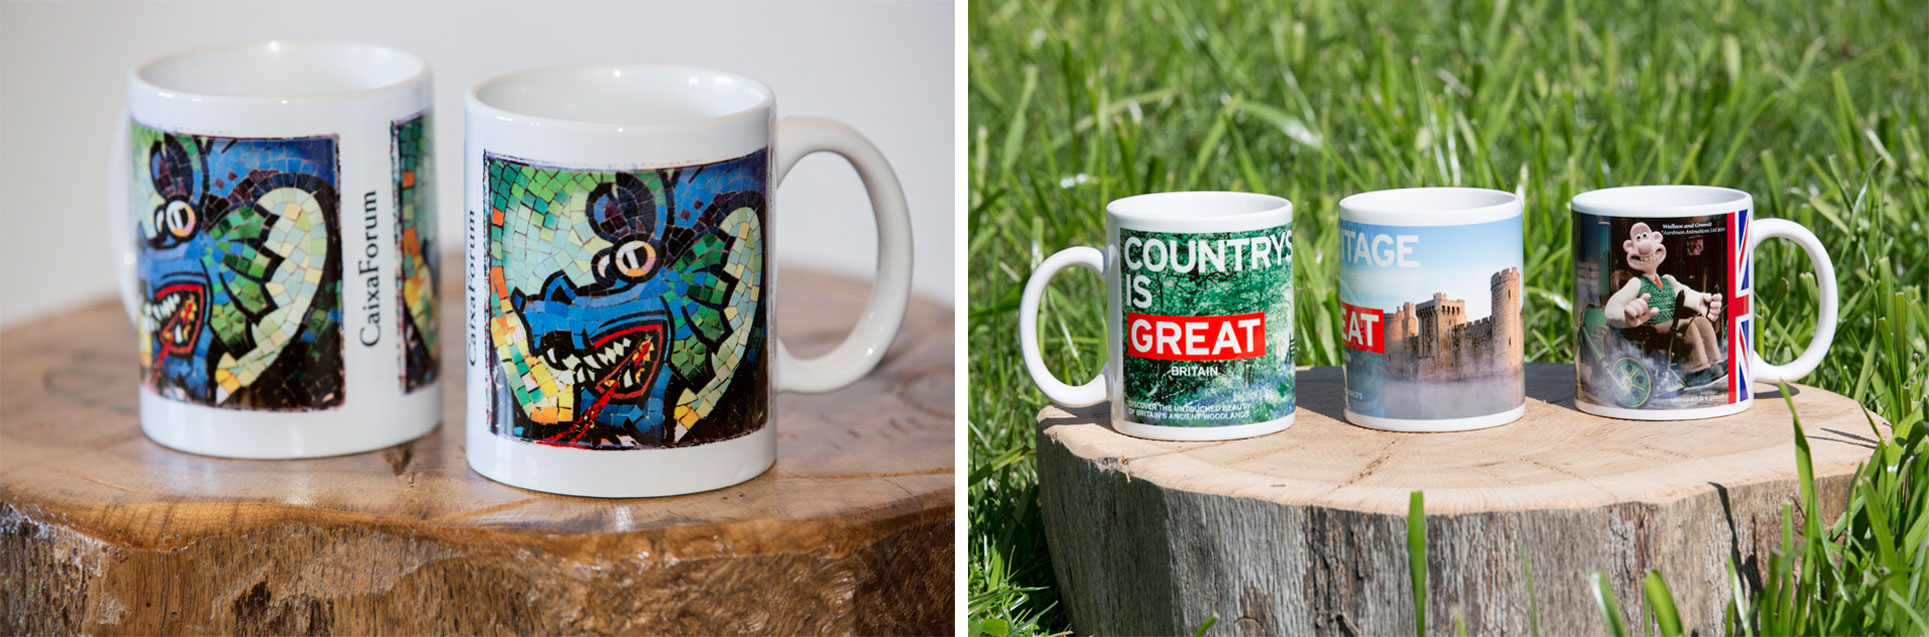 Sublimation printed mugs